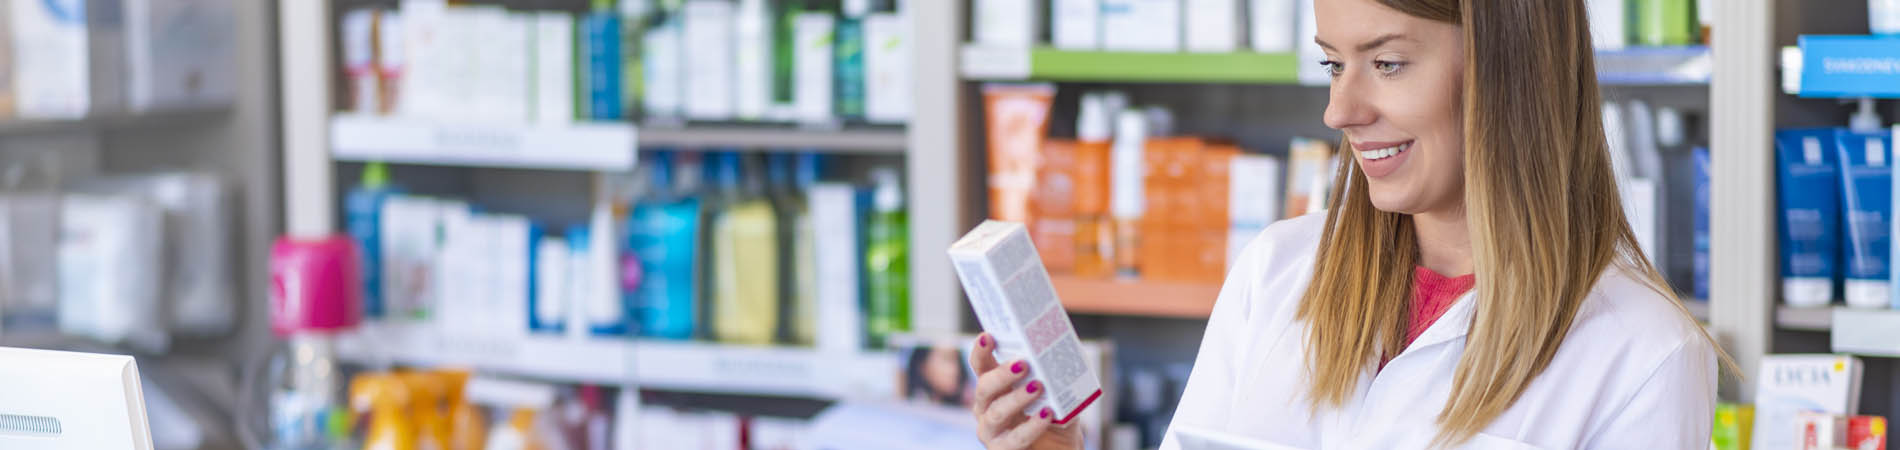 pharmacist uses a tablet to look up an e-prescription and verify dosage